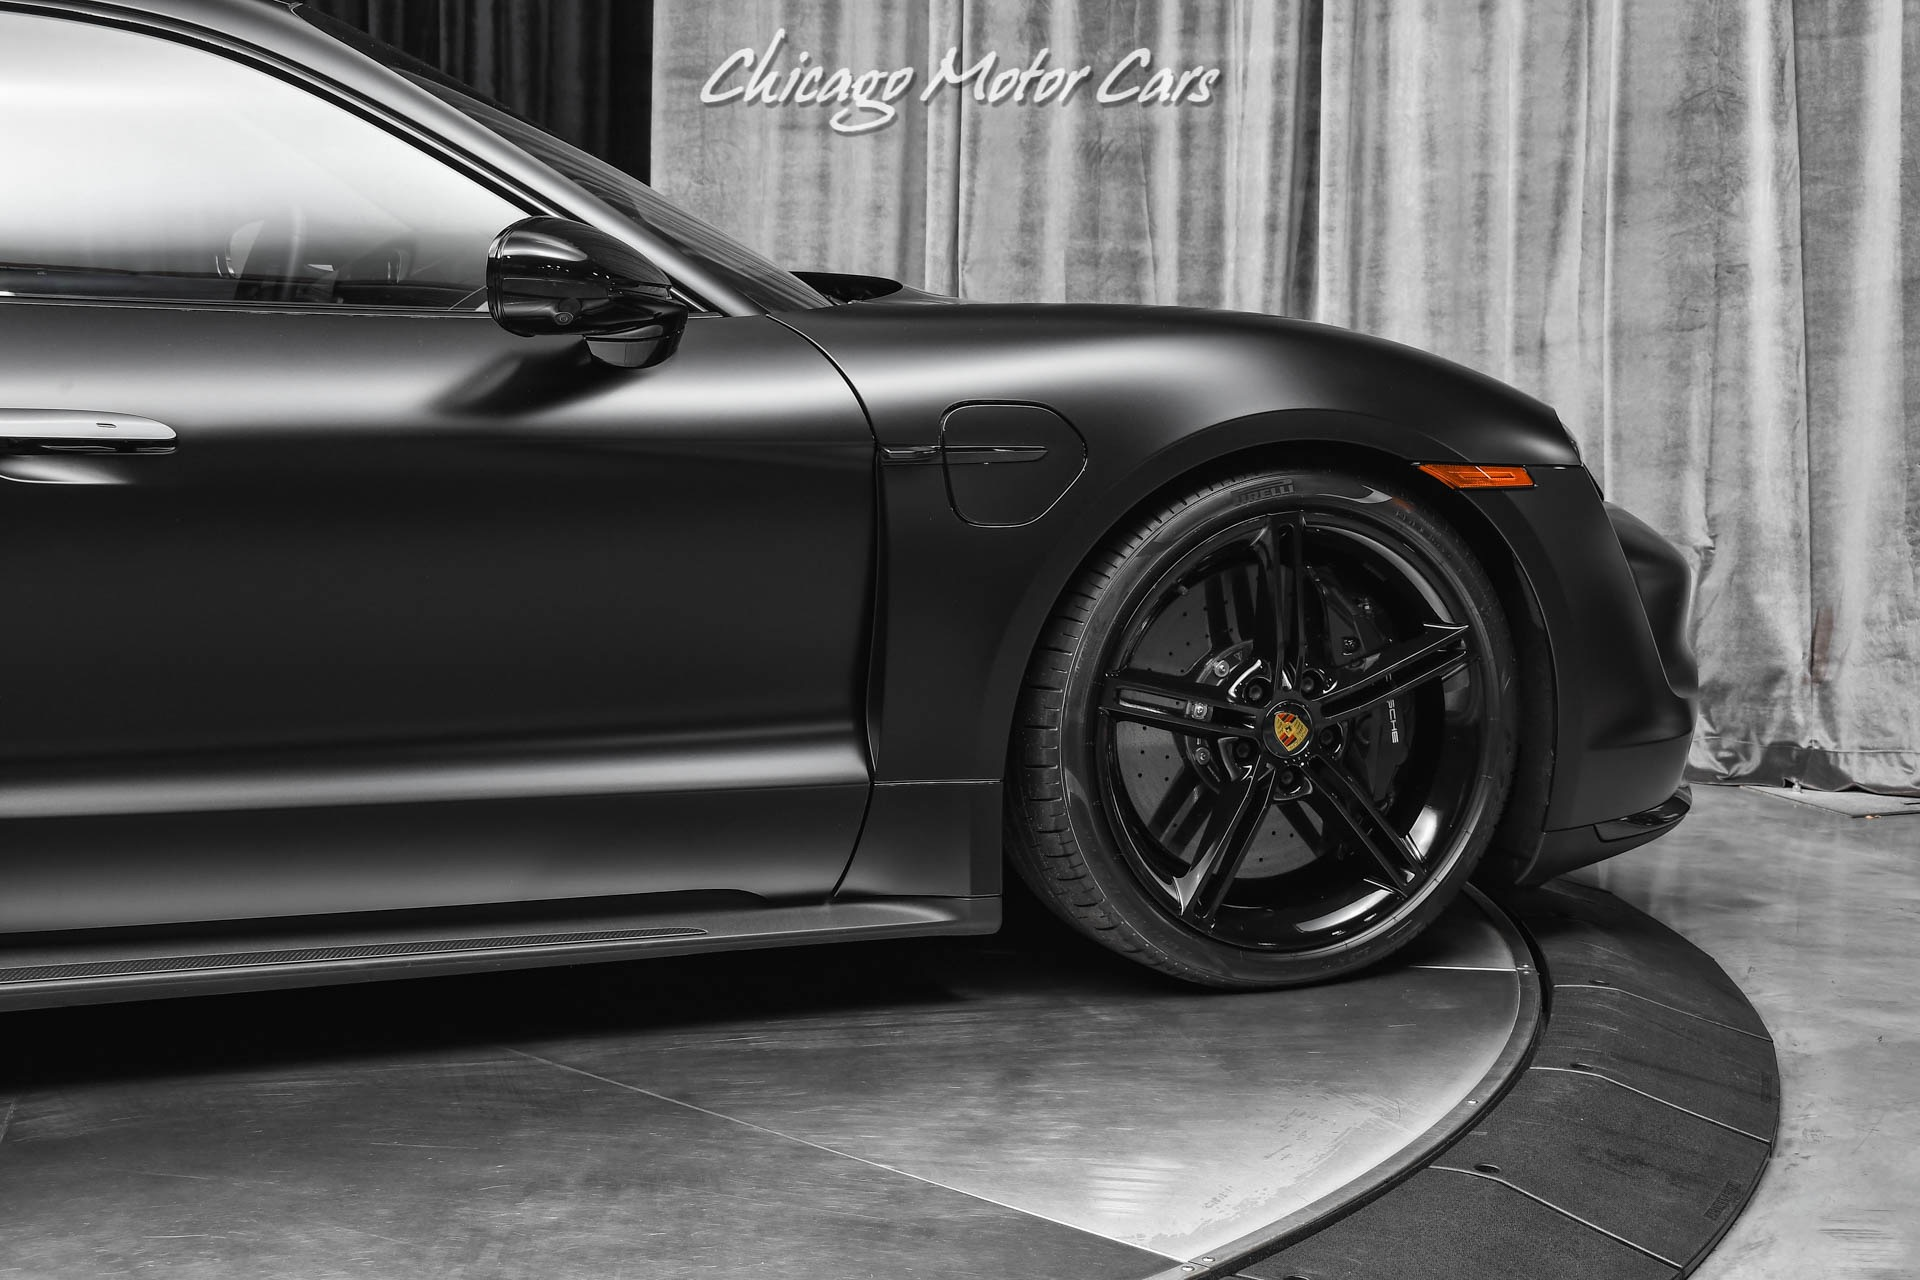 Used-2021-Porsche-Taycan-Turbo-S-Only-1k-Miles-Premium-Package-Full-Stealth-PPF-LOADED